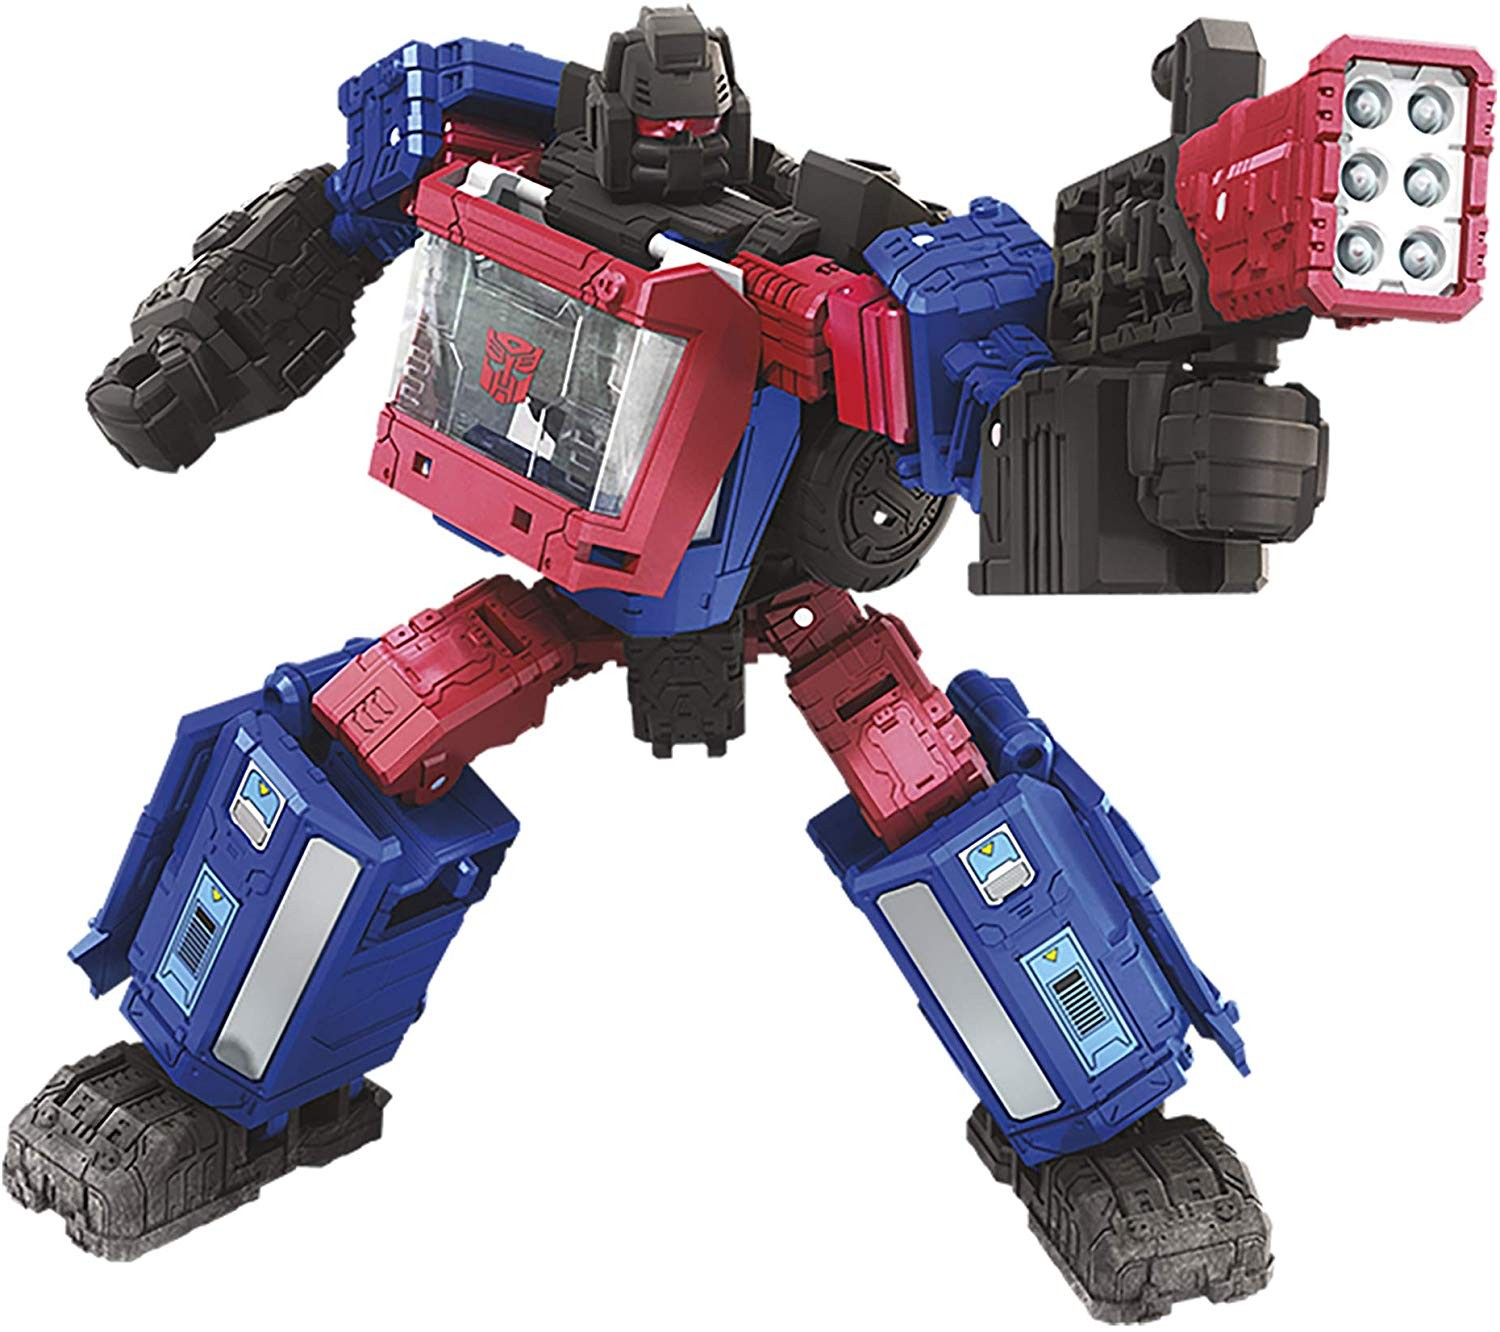 Transformers News: Transformers War for Cybertron: Siege Spinister and Crosshairs Up For Pre-Order at Amazon, Crosshair